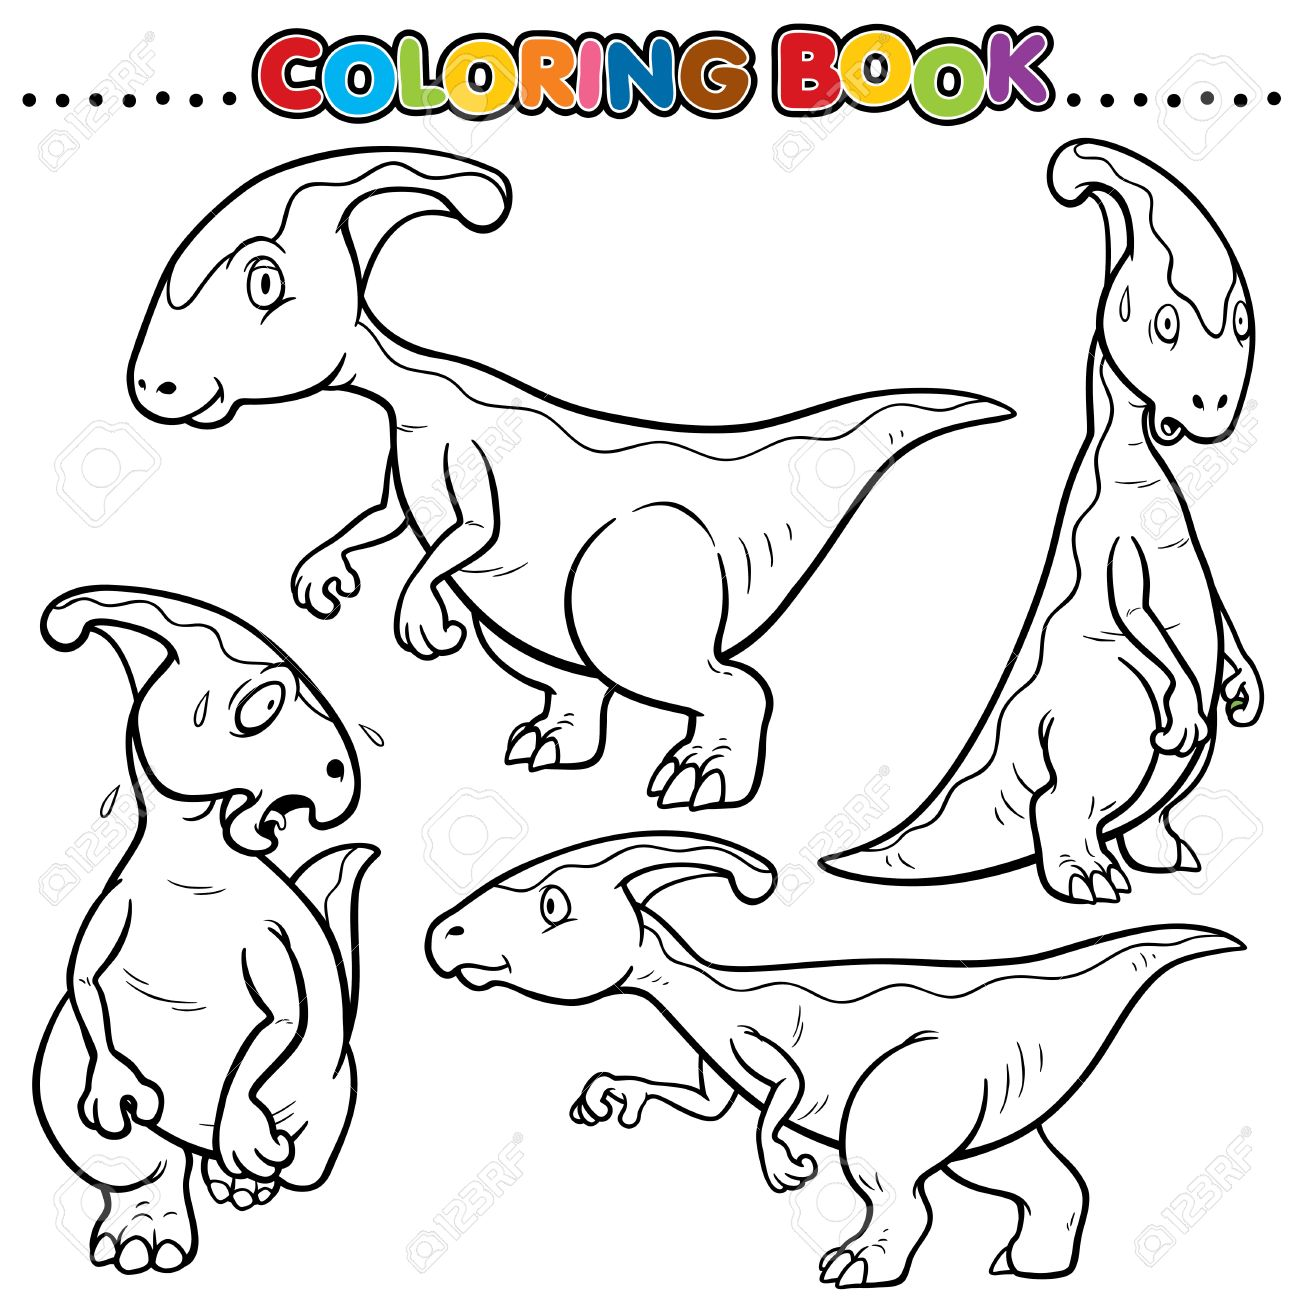 Cartoon Coloring Book - Dinosaurs Character Royalty Free Cliparts ...